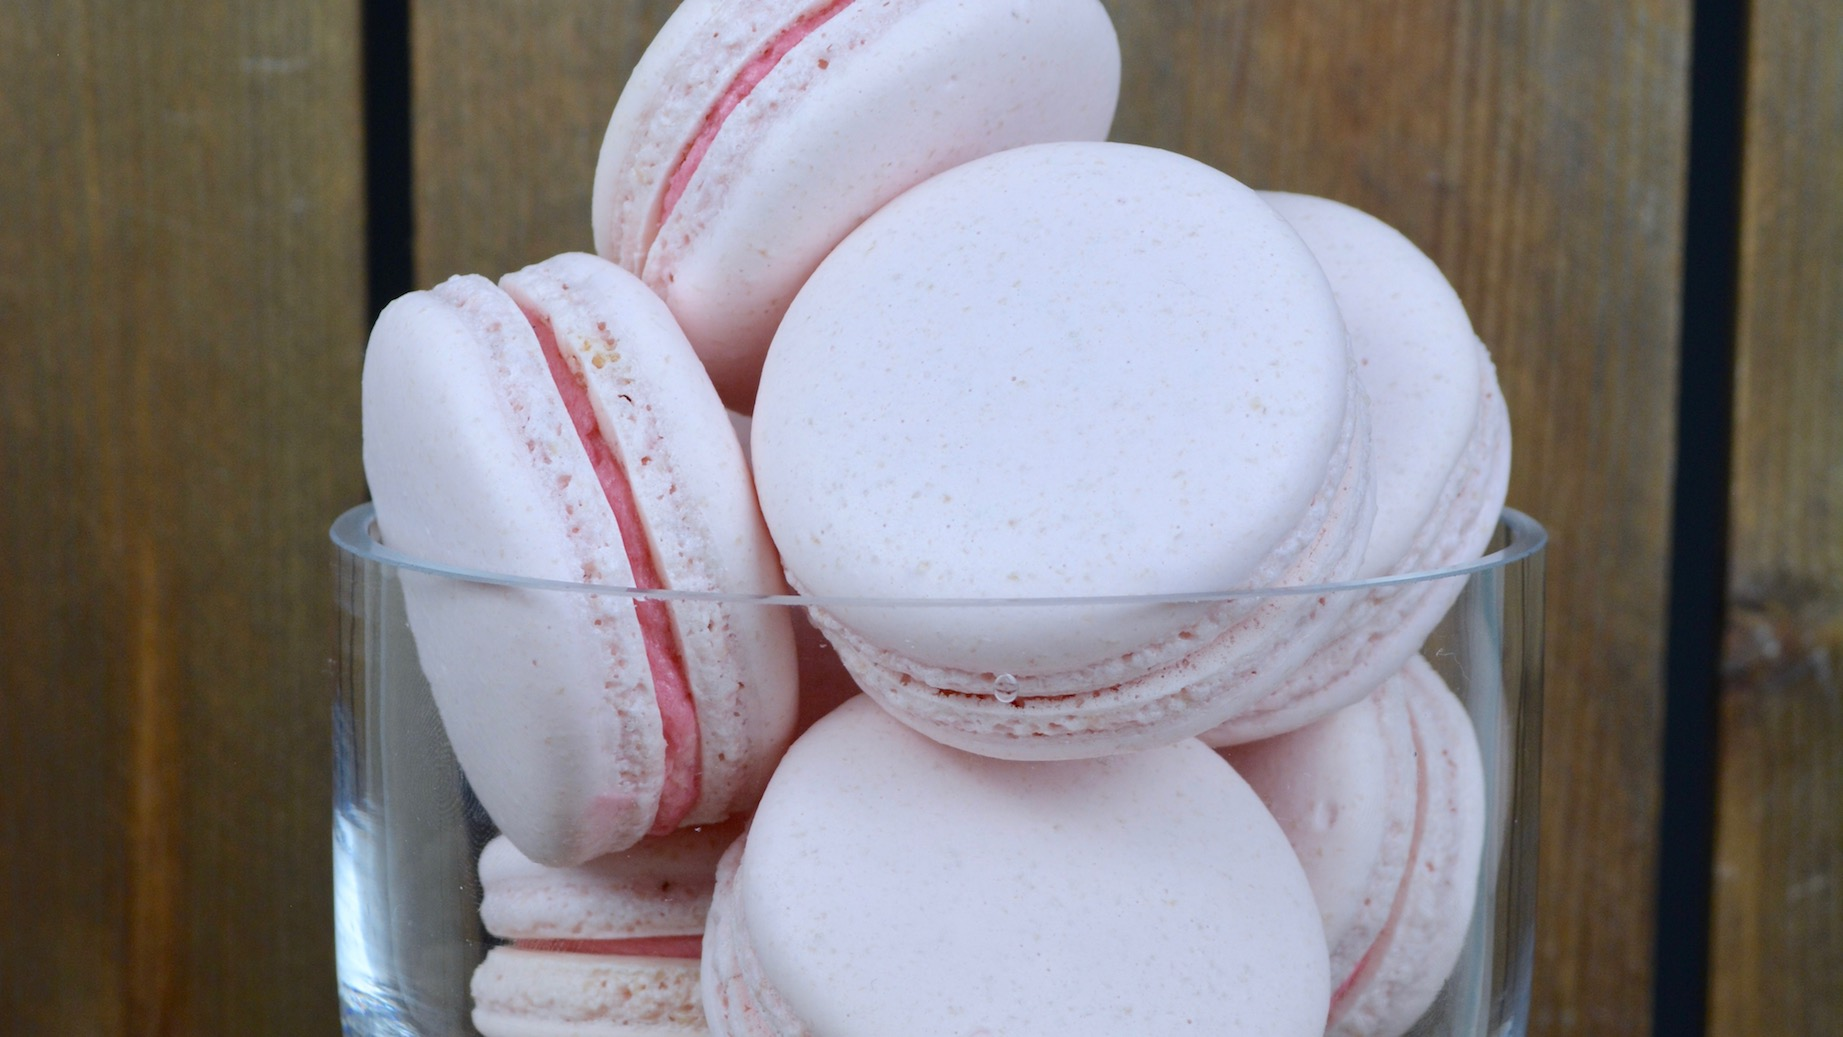 Macarons - Our delicious macarons make fantastic wedding favours and come in a range of flavours and fillings. Individually bagged, boxed or add to your dessert table for a great sweet treat for your wedding guests.